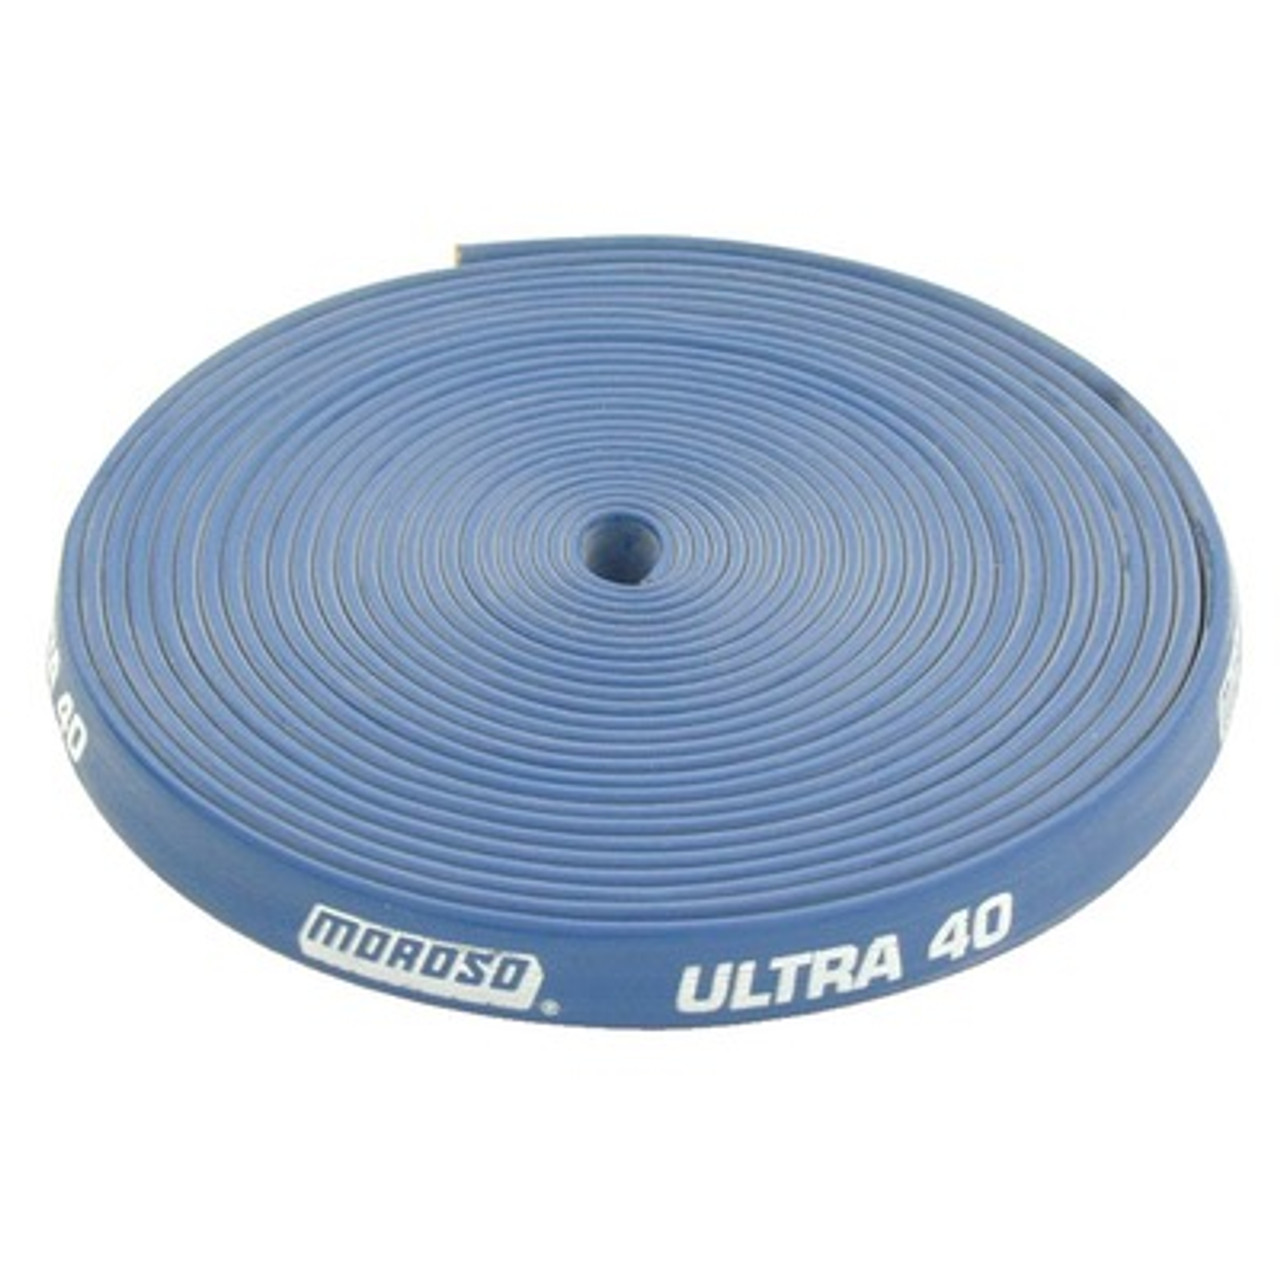 Moroso 72011 Insulated Wire Sleeve Ultra 40 - Blue - 25 Ft. Roll